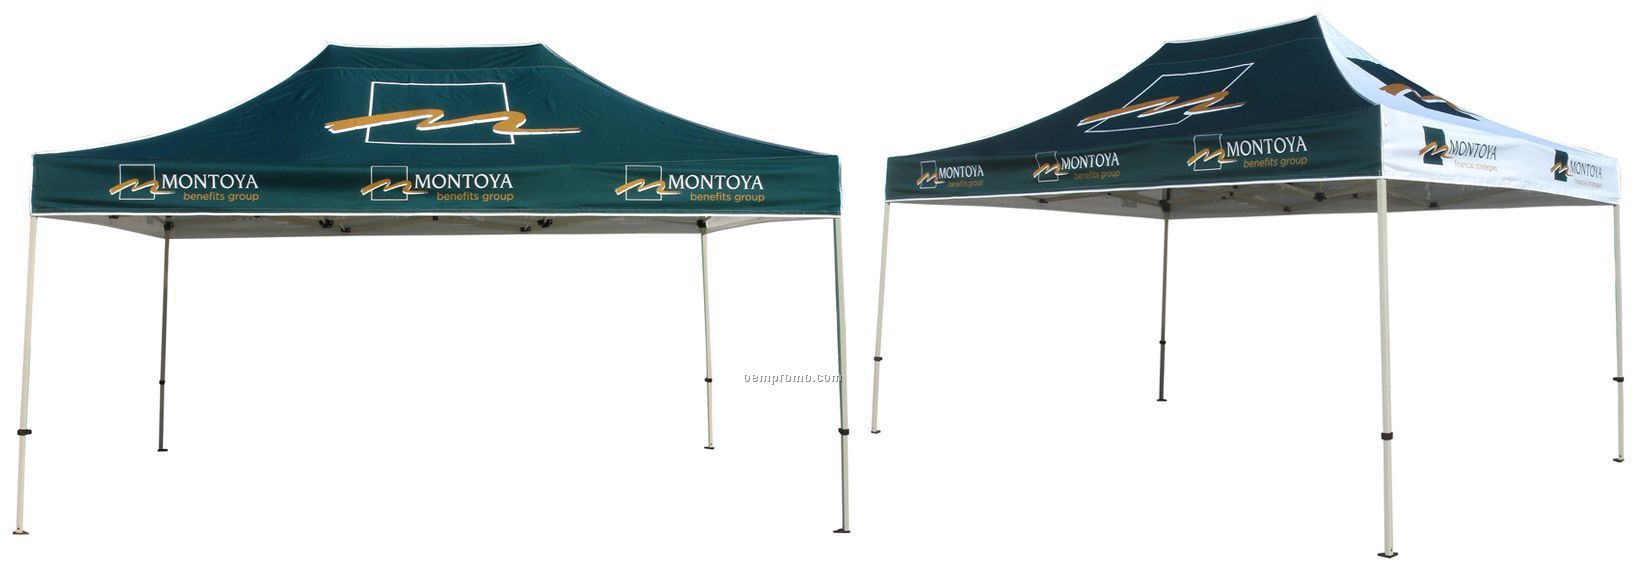 10x15 pop up canopy tent w steel frame digital china for Steel frame tents